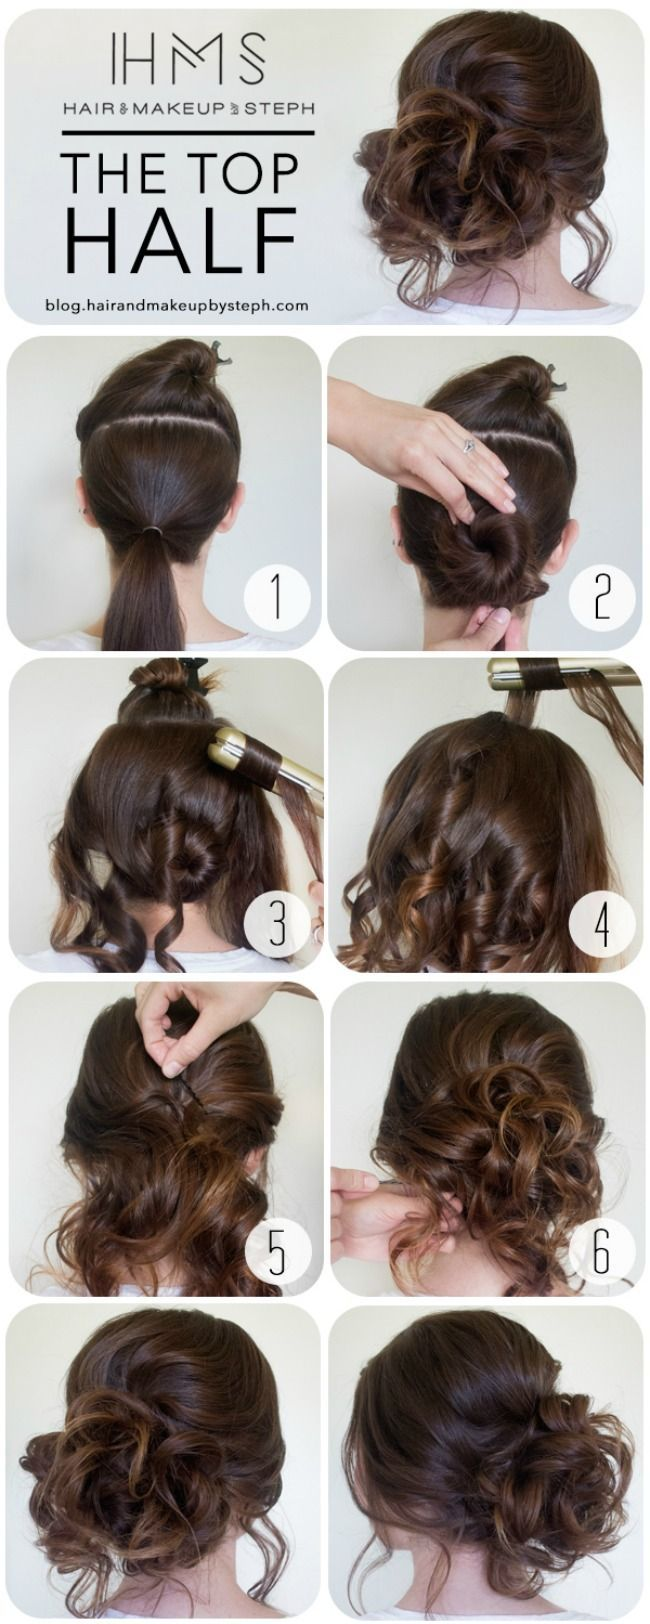 updo ideas. easy updo hairstyles with directions.   diy